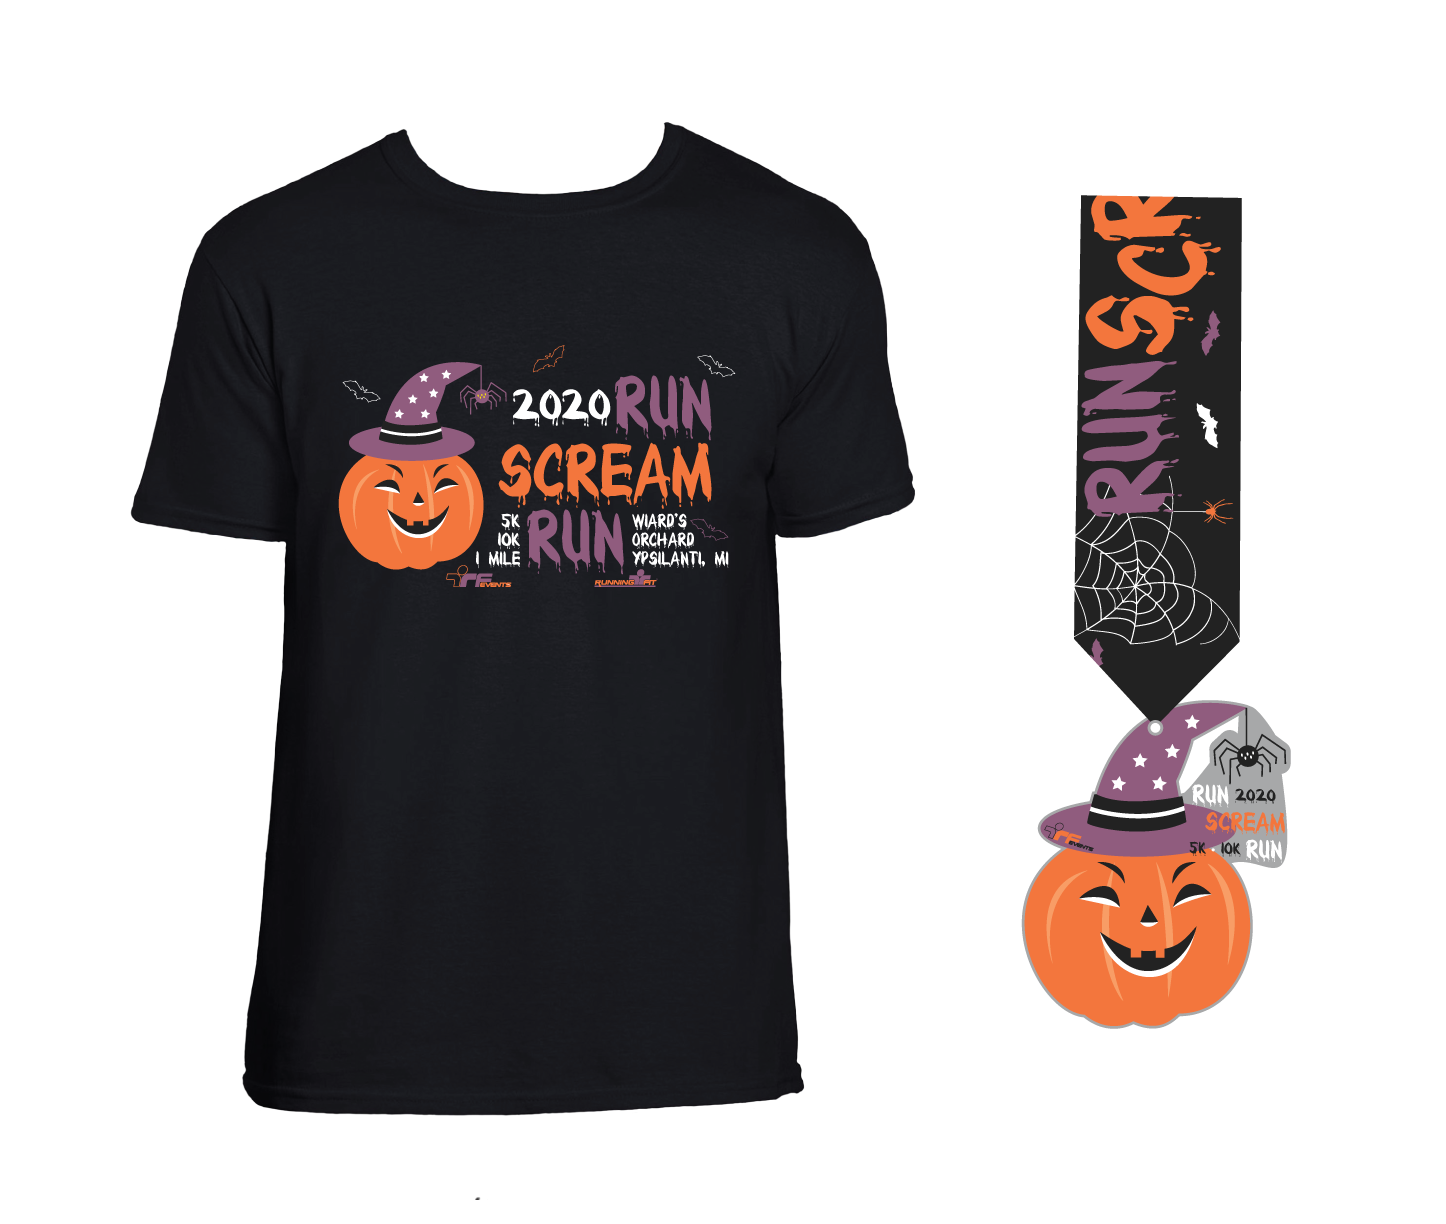 19 RunScream shirtmedal forweb 02